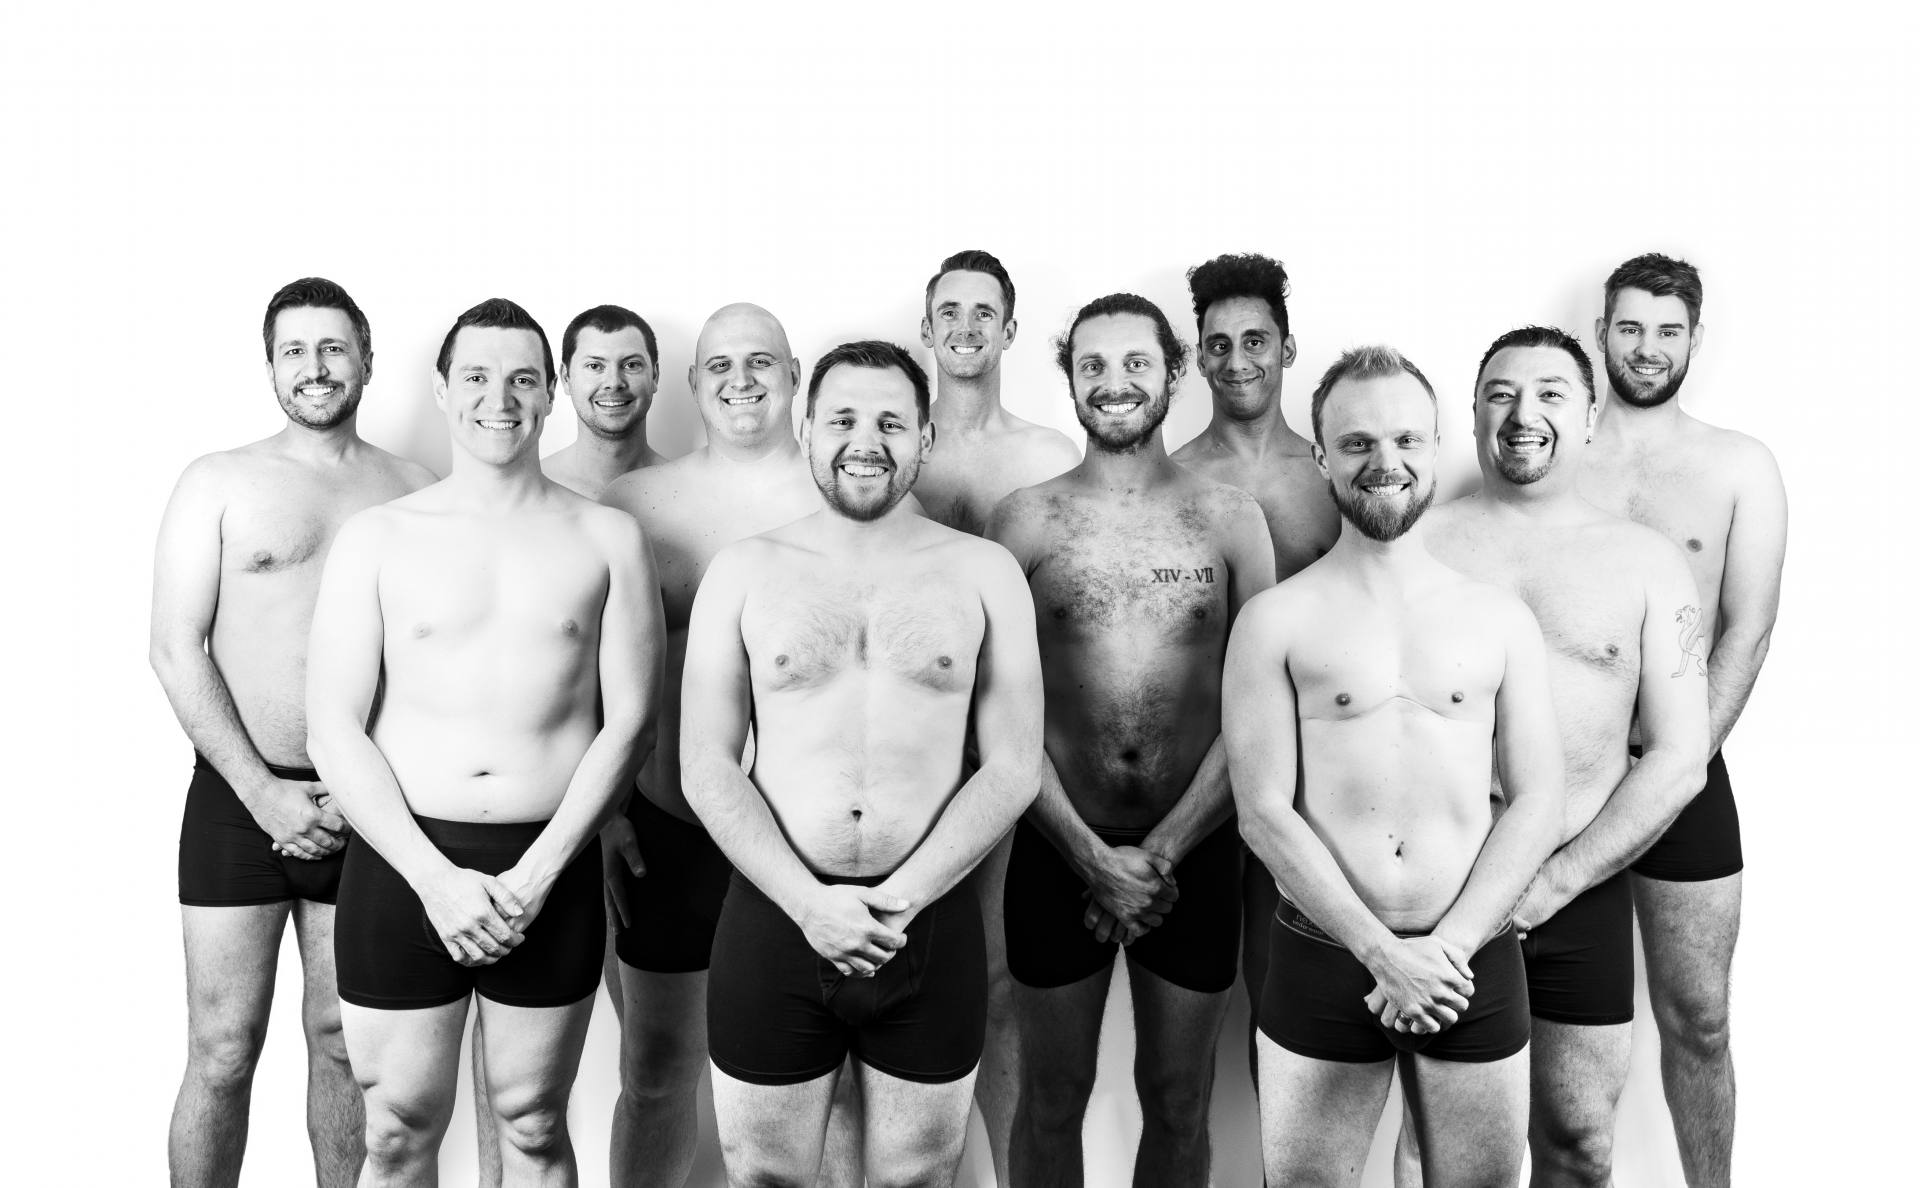 Dads Pose Naked to Raise Awareness of Father's Body Image Related Mental Health, DadBodShoot April2018 591%, daily-dad, health%